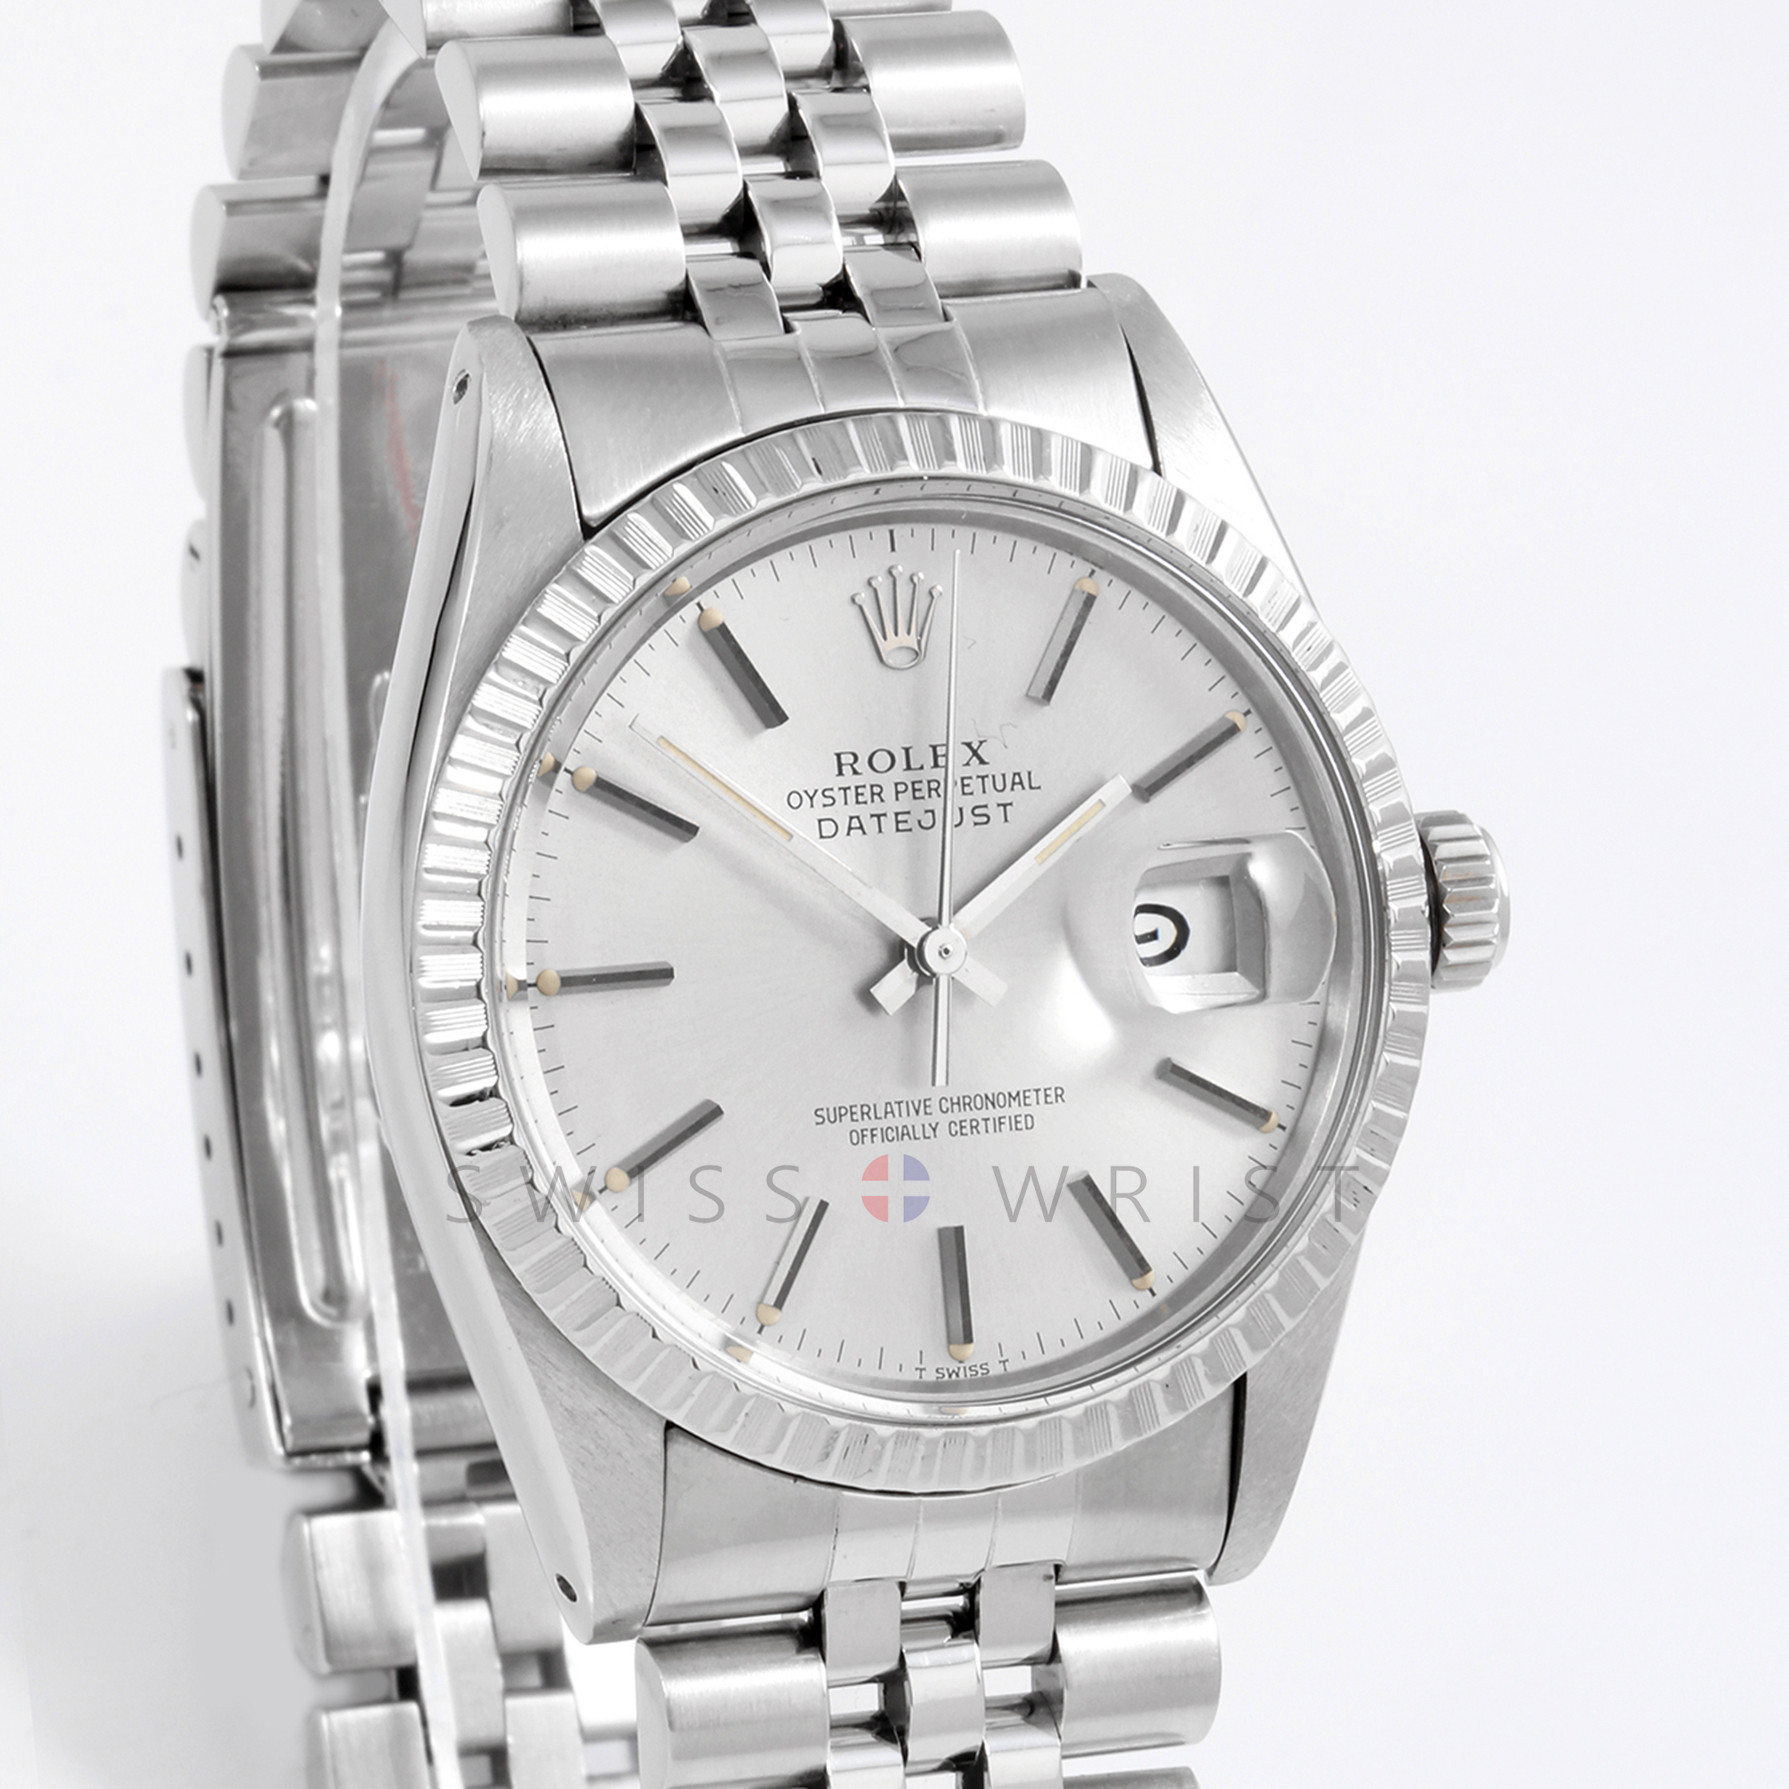 Rolex 16030 Mens Datejust 36mm Stainless Steel w/ Silver Stick Dial & Engine Turn Bezel with Jubilee Bracelet - Pre-Owned with Box & Papers